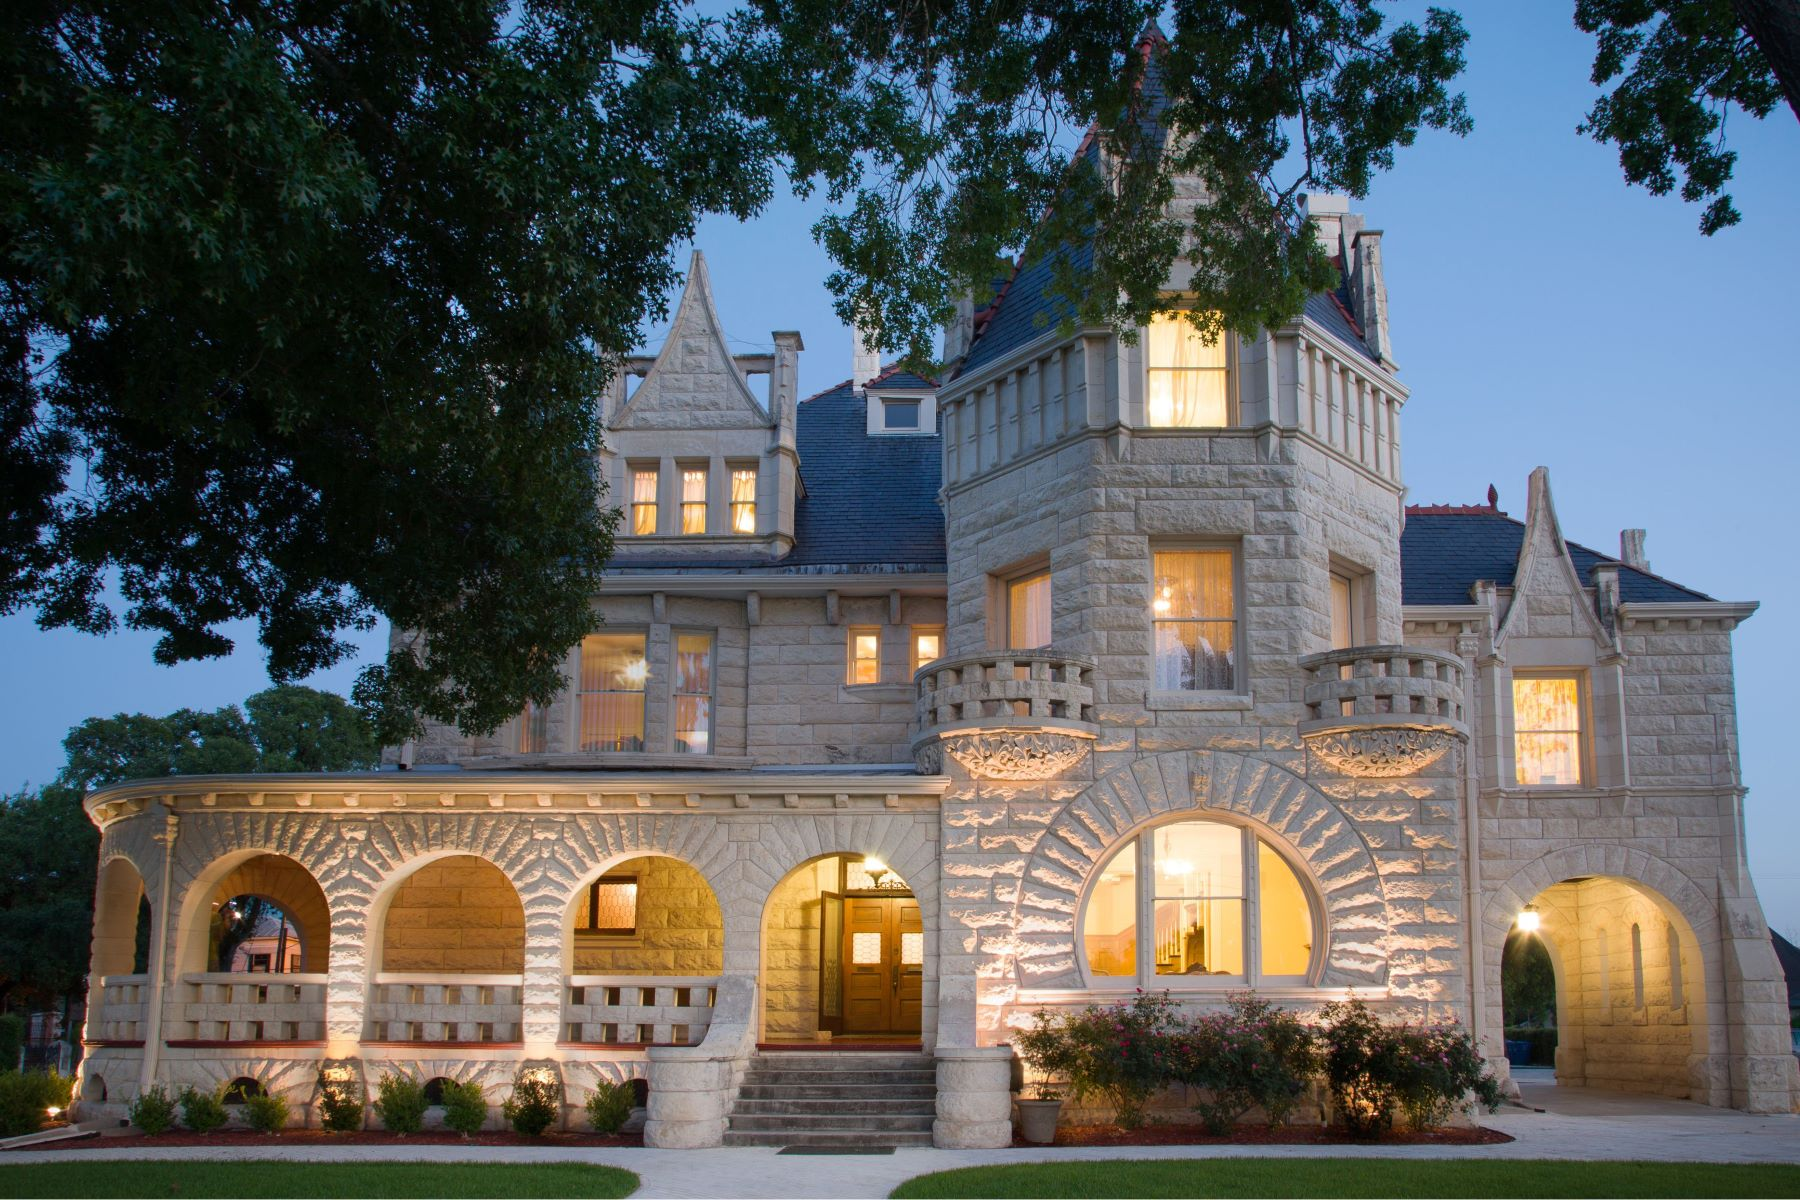 Single Family Homes for Sale at Historical Texas Castle 950 East Grayson Street San Antonio, Texas 78208 United States